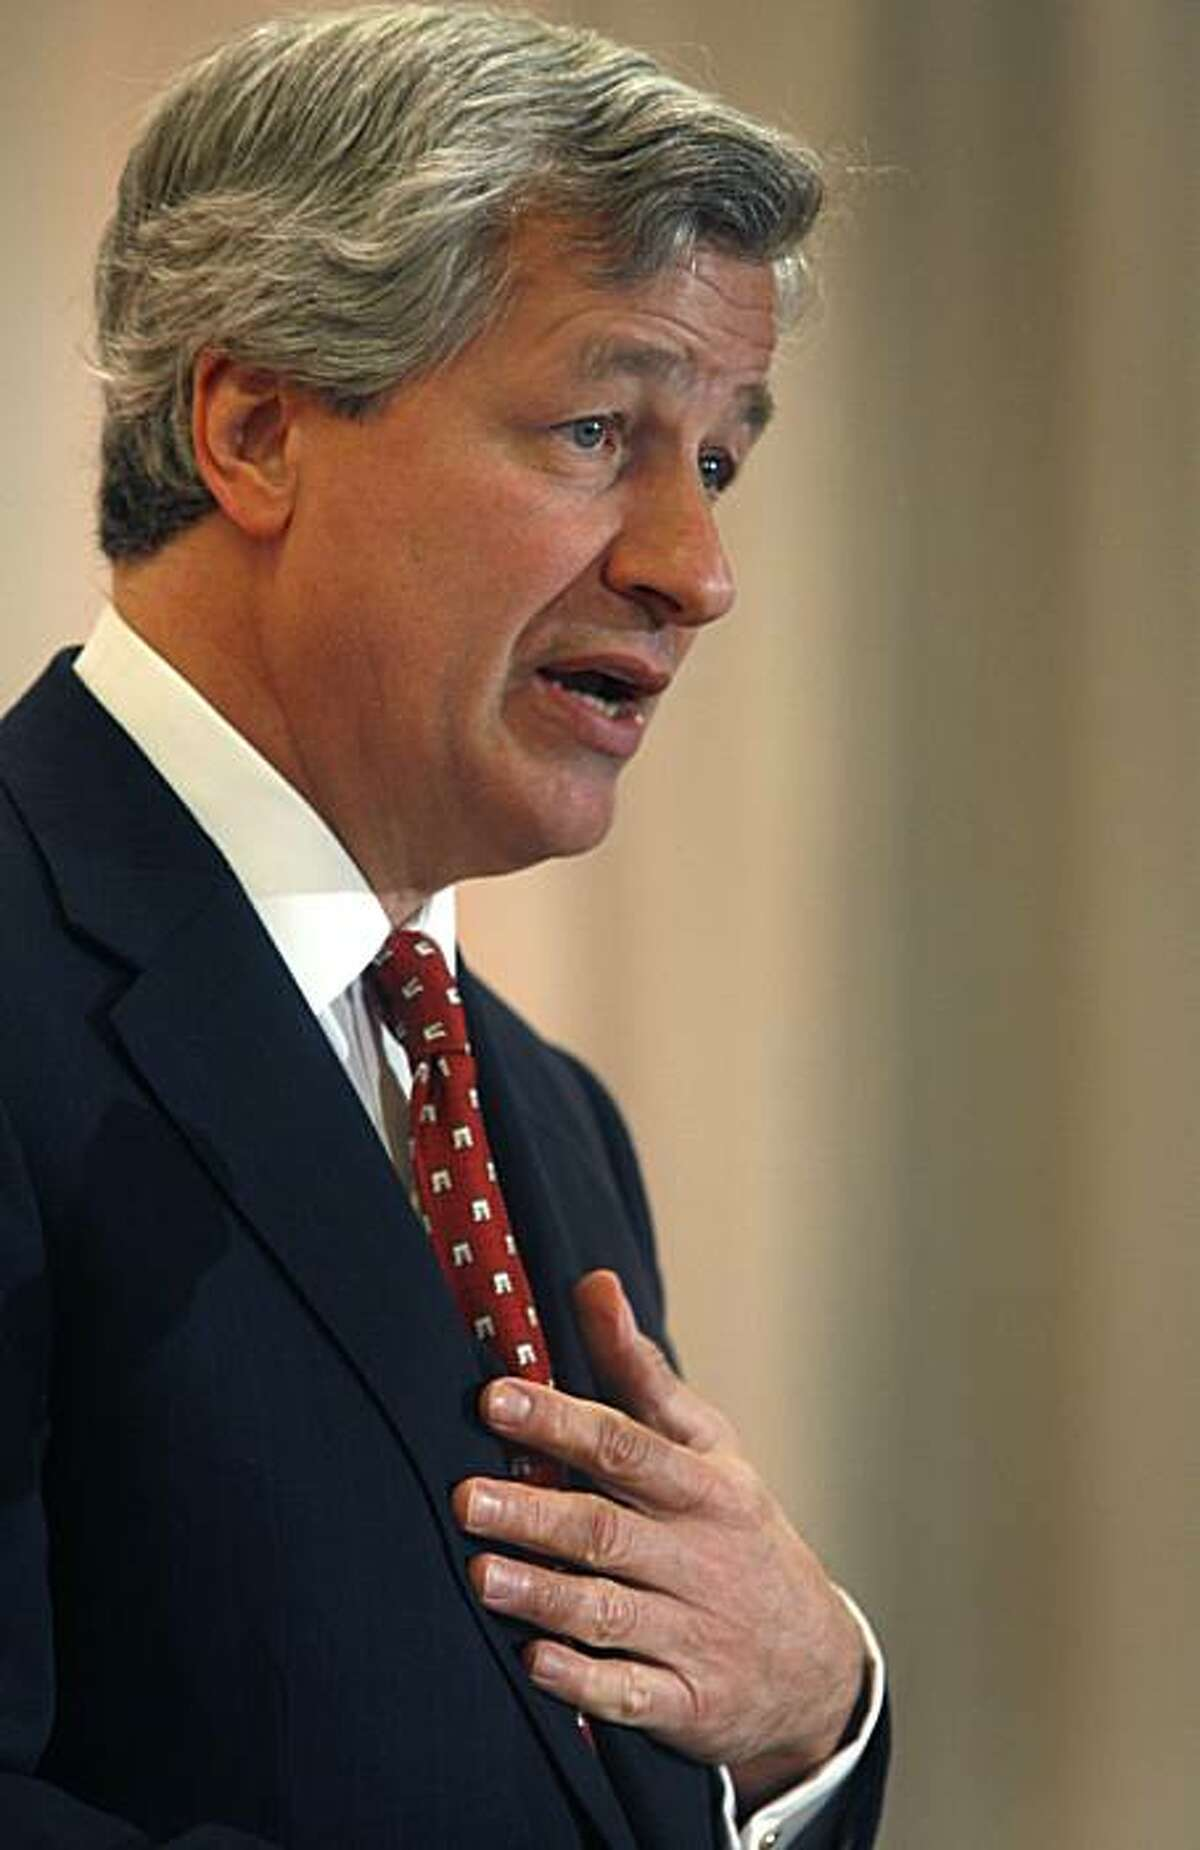 Jamie Dimon, chairman and CEO of JP Morgan Chase, addresses a gathering of business and civic leaders at an economic summit in Stanford, Calif., on Friday, March 12, 2010.